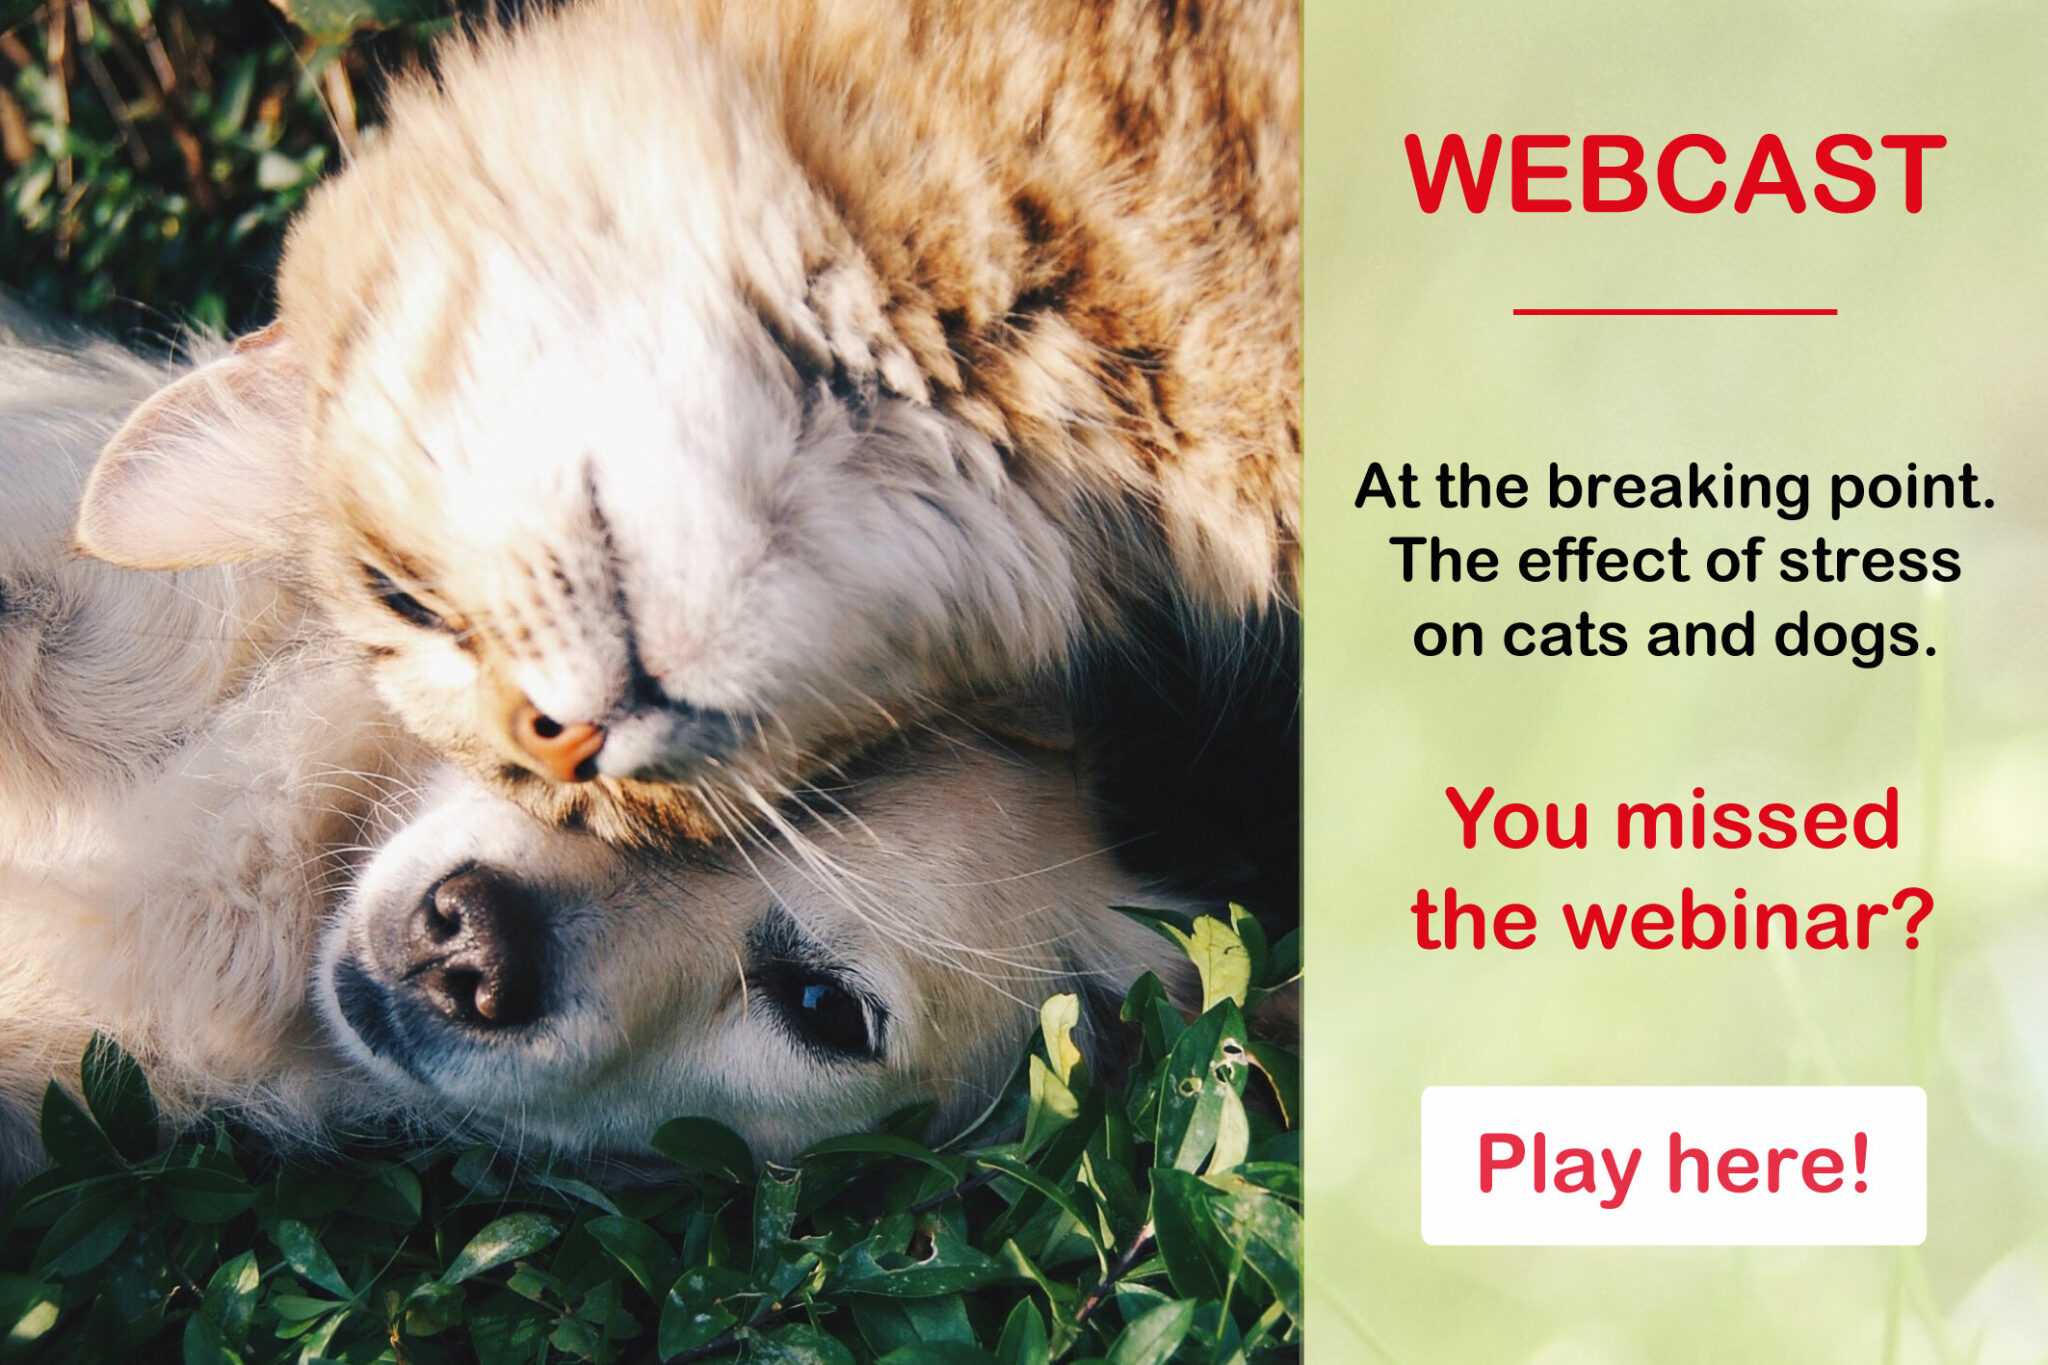 Webcast: at the breaking point. The effect of stress on cats and dogs.